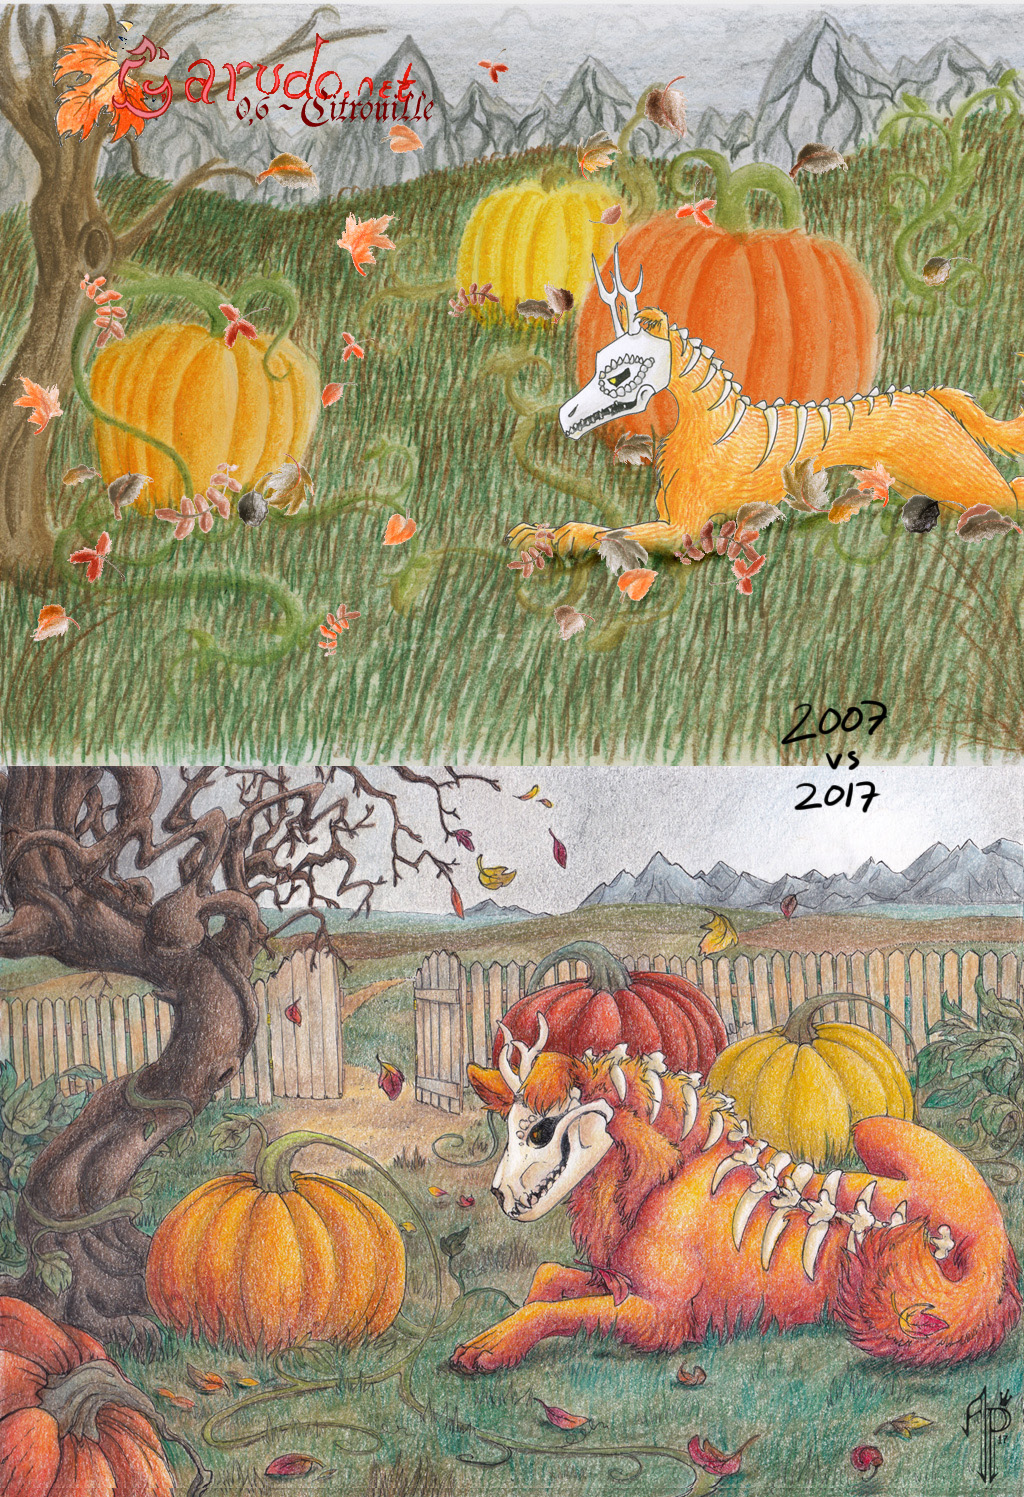 Citrouille - 2007 vs 2017 by AzurePrincet